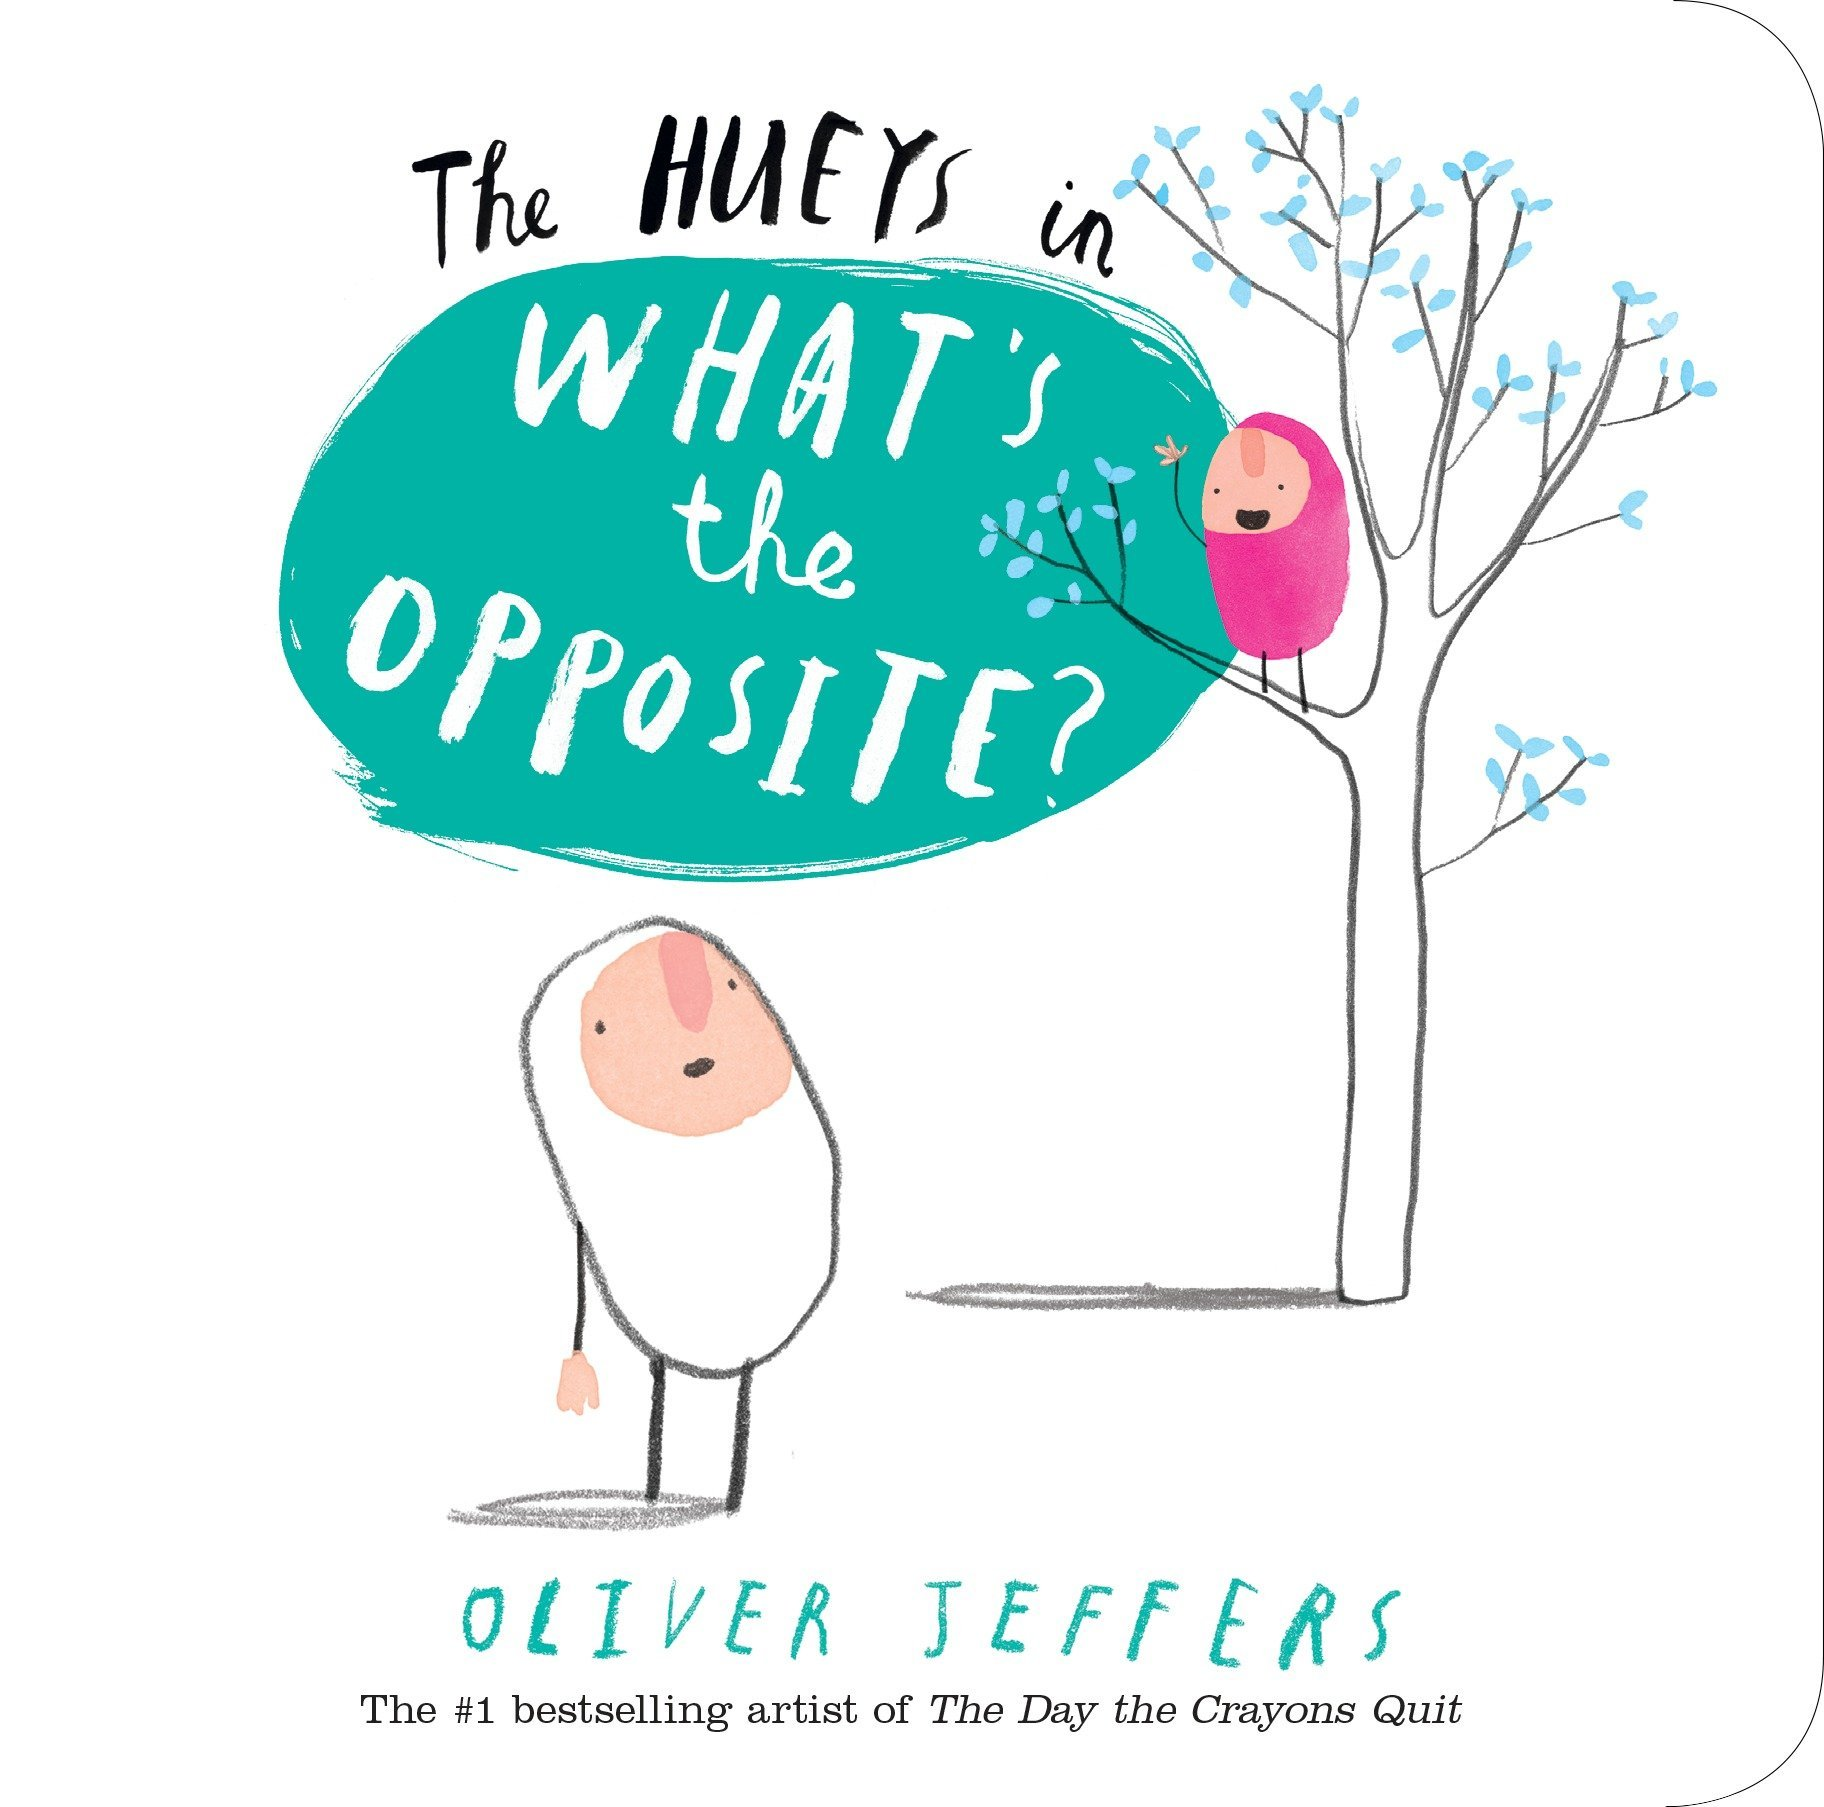 The Hueys in What's the Opposite by Oliver Jeffers